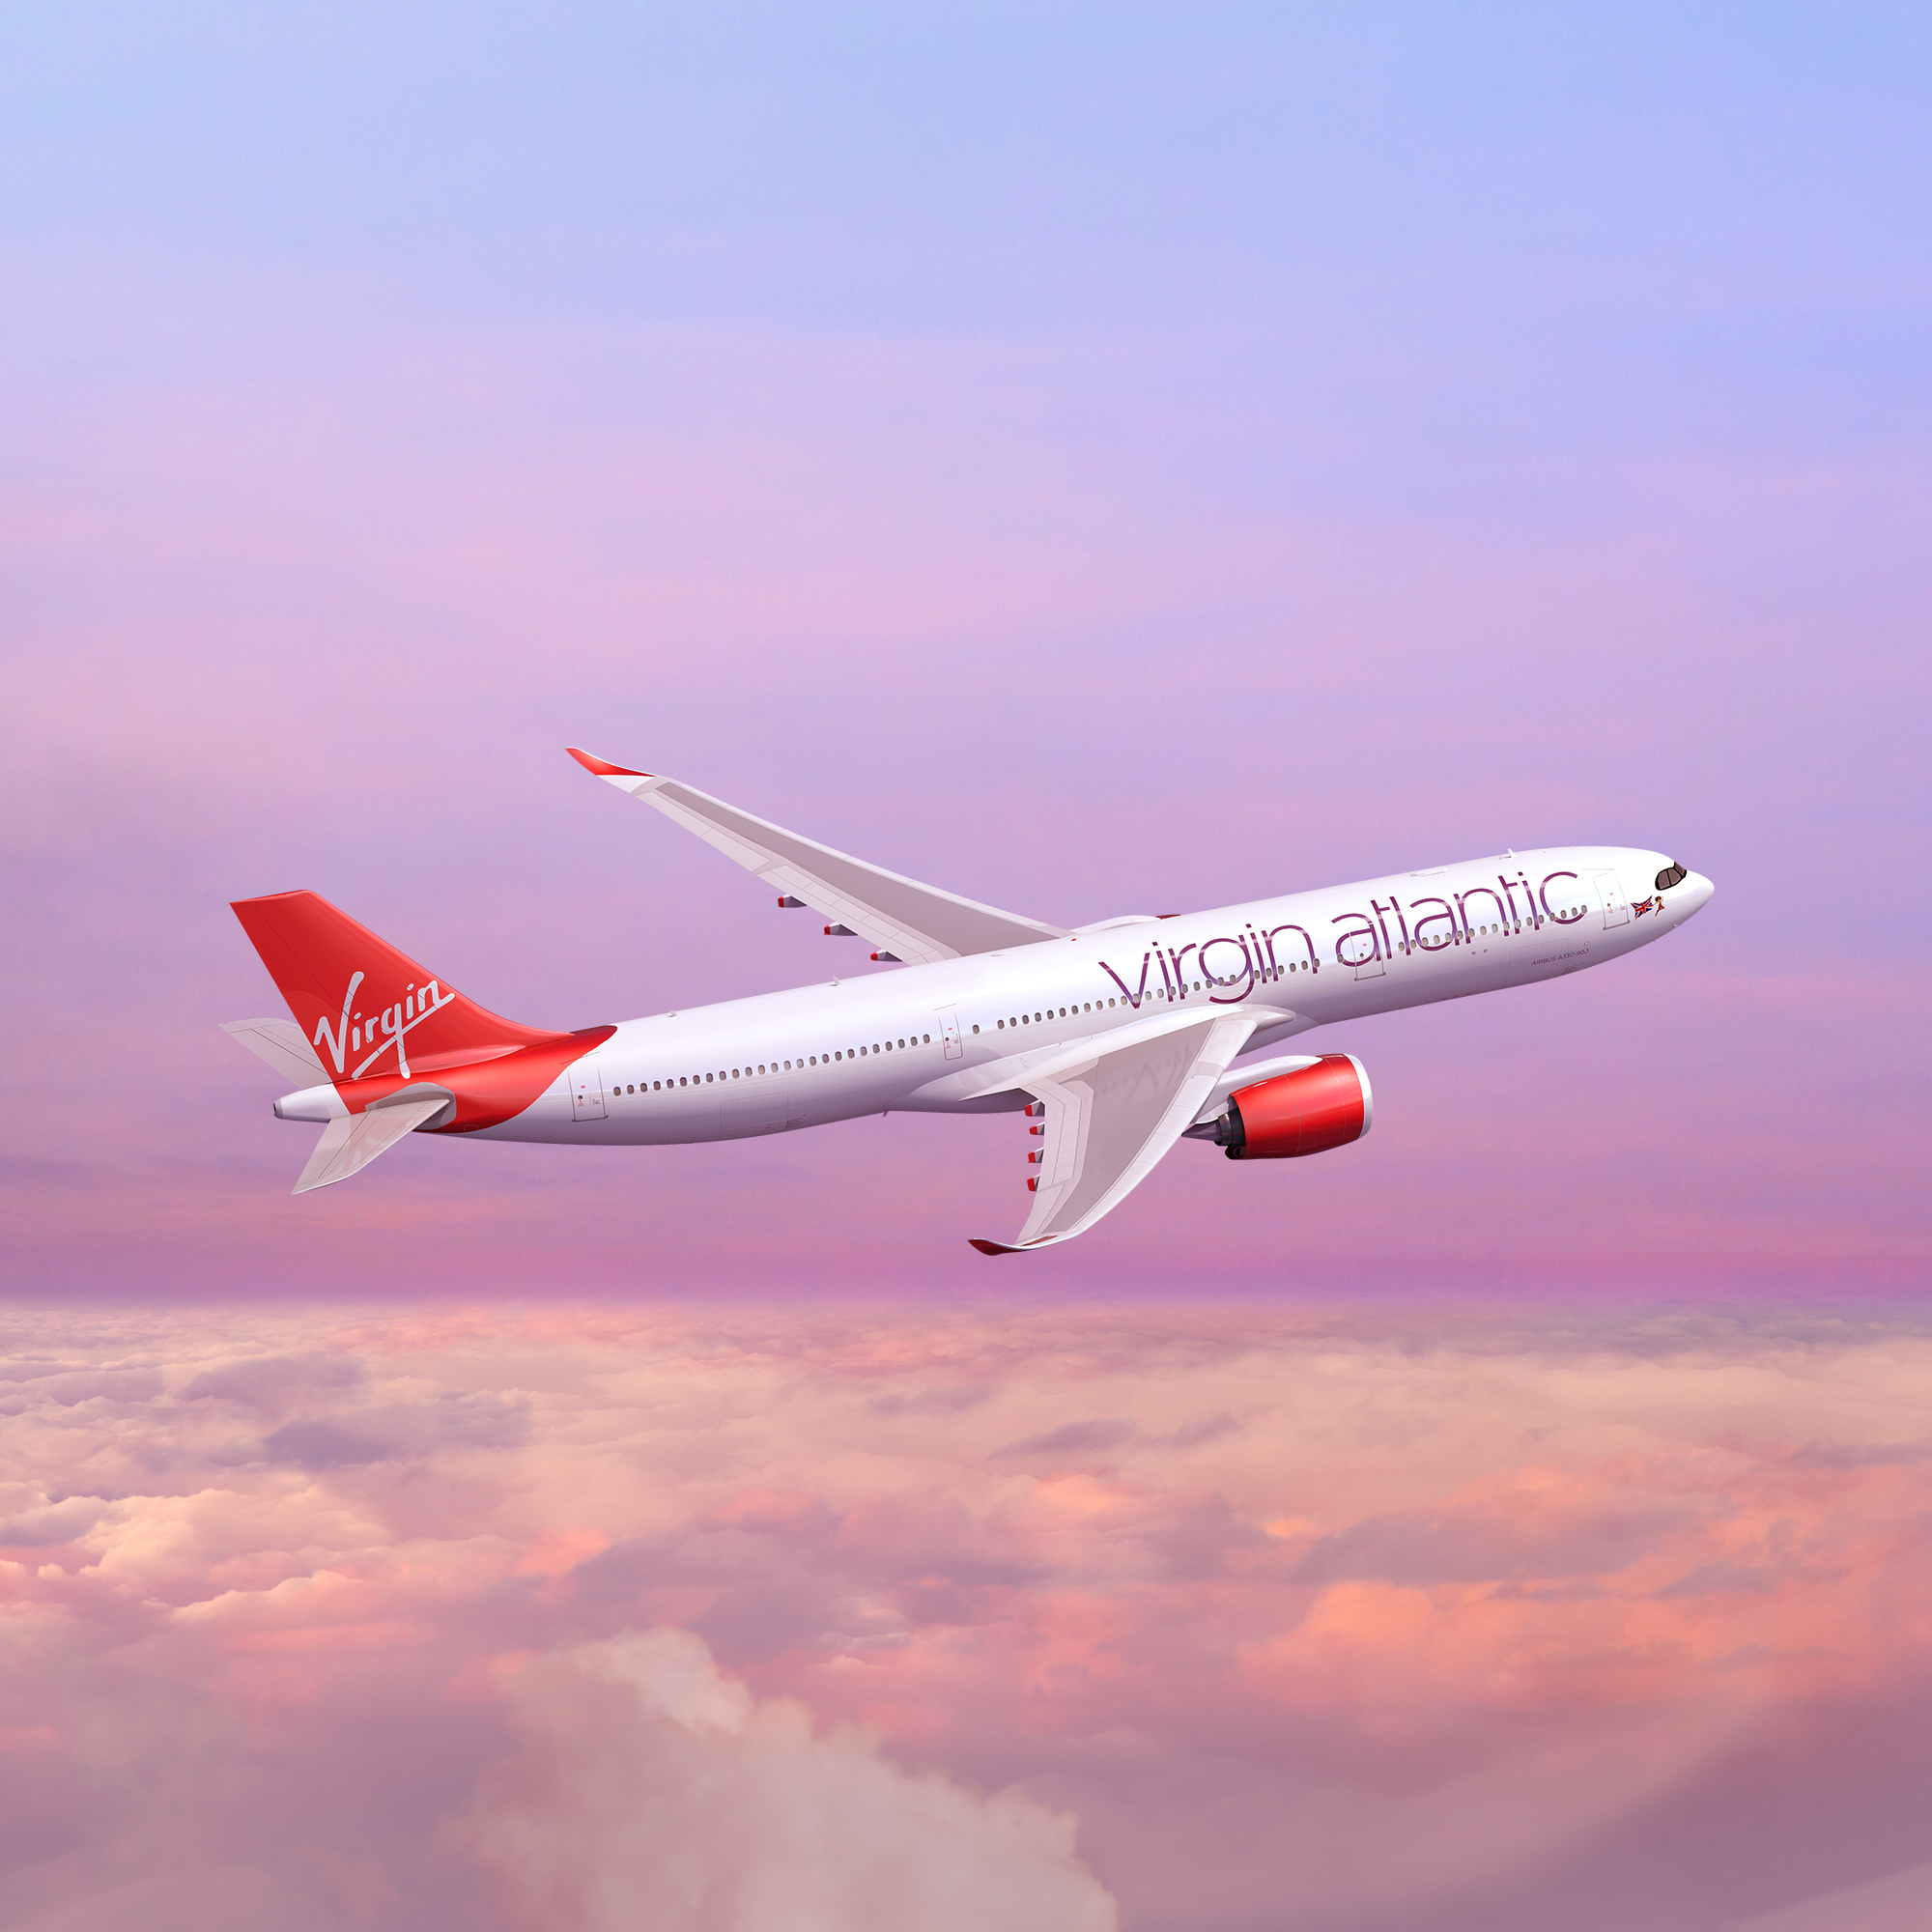 London to the US non-stop with Virgin Atlantic starting from £262/$339 [Economy Class]